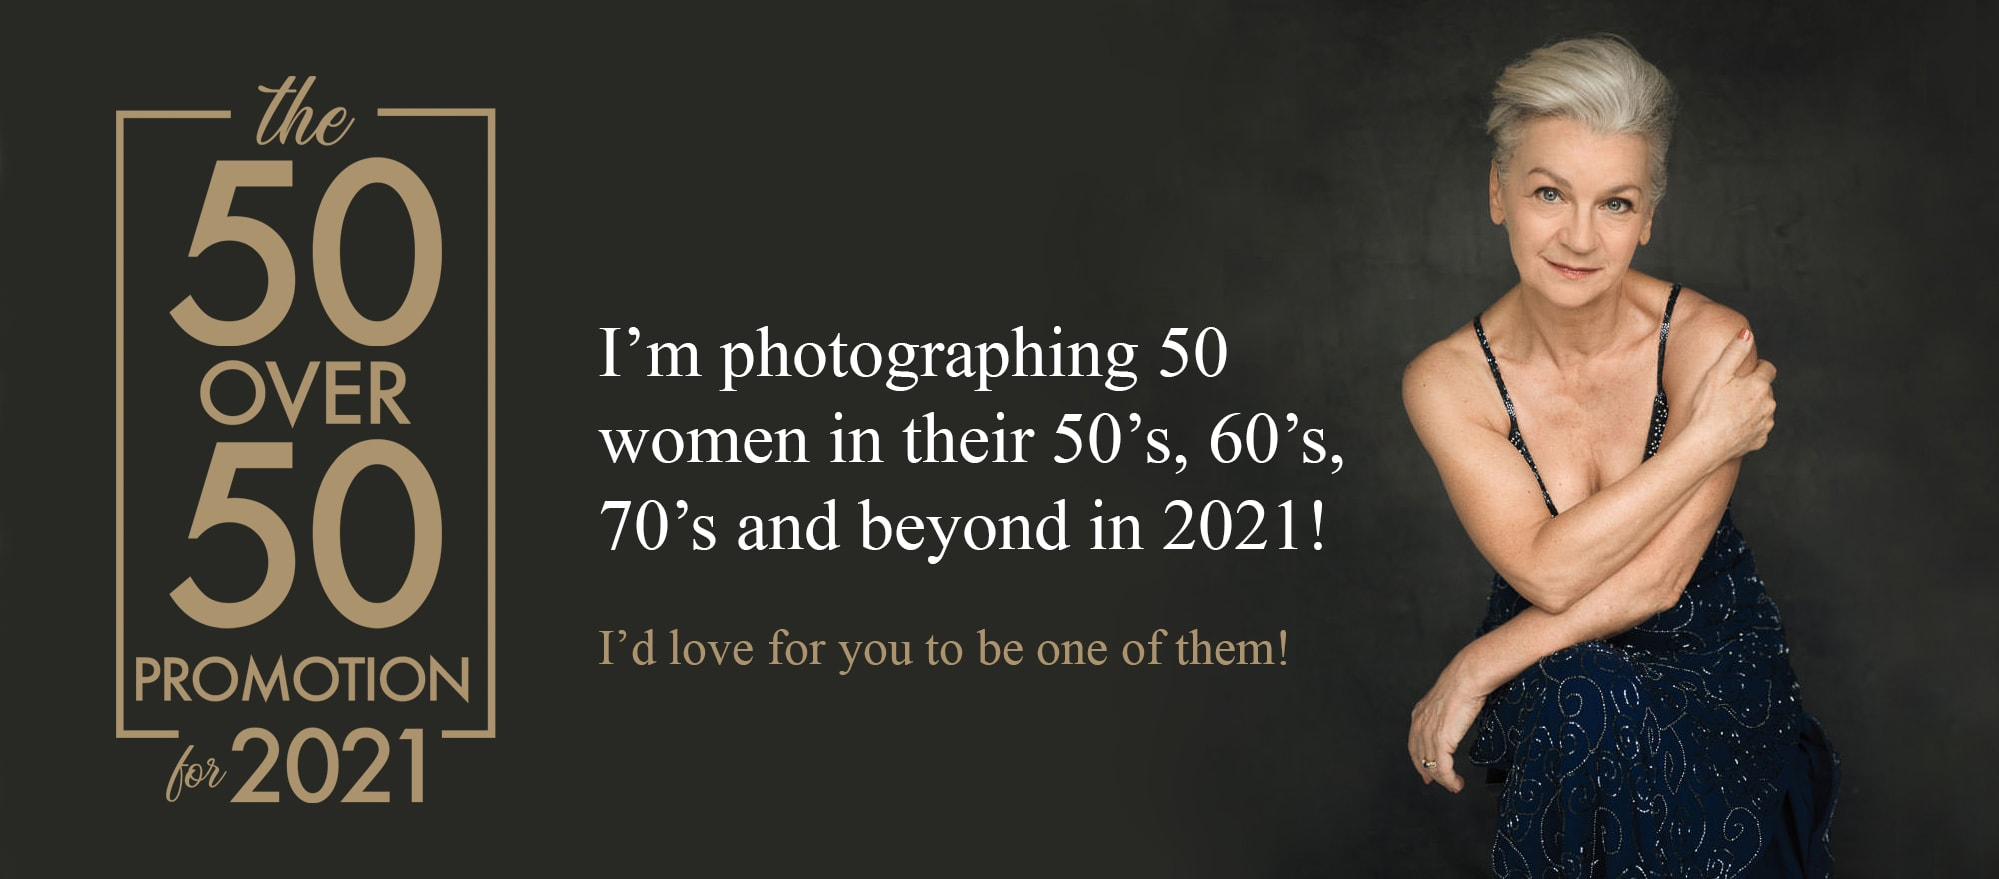 50 over 50 promotion